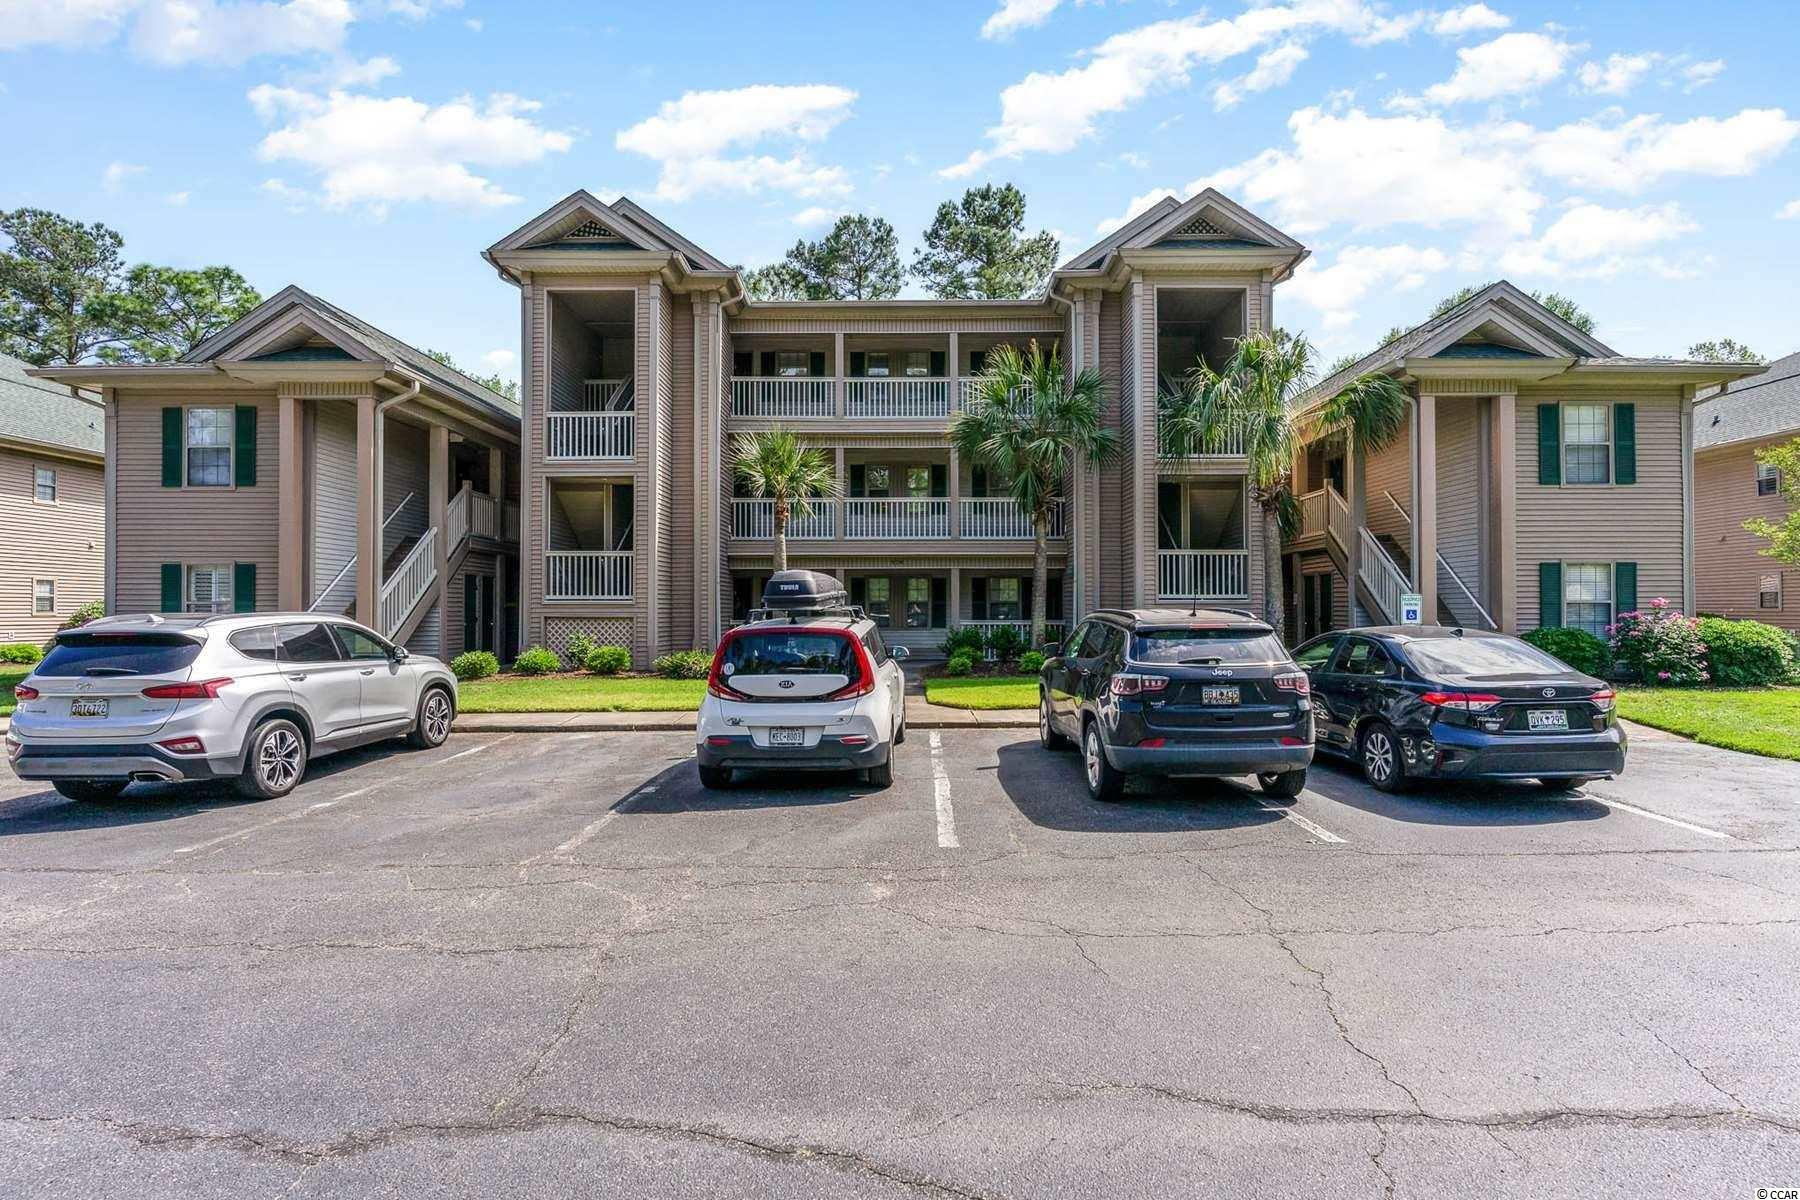 Must see! Second floor, 2 bedroom, 2 bathroom condo located in the golf course community of True Blue in Pawleys Island.  New HVAC  and dishwasher in 2019, new water heater  and new   large capacity washing machine 2020.   This condo offers wonderful views of the golf course and community lake! The open kitchen/main living area is ideal for everyday living and entertaining. The fully equipped kitchen offers plenty of counter space and cabinets for storage. The roomy master suite features a walk-in closet, a vanity sink, a shower/tub combination and private access to the screened porch. The other bedroom is nicely sized and has access to the second bathroom for more privacy. A full-size washer and dryer are located in the condo for more convenience. The screened porch is the ideal spot to enjoy a morning coffee or evening cocktail with relaxing views of the golf course and the lake. On top of this fantastic unit, True Blue has an outdoor pool, jacuzzi and is surrounding by golf courses. Pawleys Island is conveniently located just a few miles away from surfside Beach, MyrtleBeach, Georgetown and about 70 miles from Charleston. Near shopping, dining, golfing, entertaining, Brookgreen Gardens, the marsh walk and of course just a short drive to the Atlantic beach! This condo would be an excellent choice for a primary home, an investment property or a vacation getaway! Don't miss out on this opportunity and schedule your showing today!